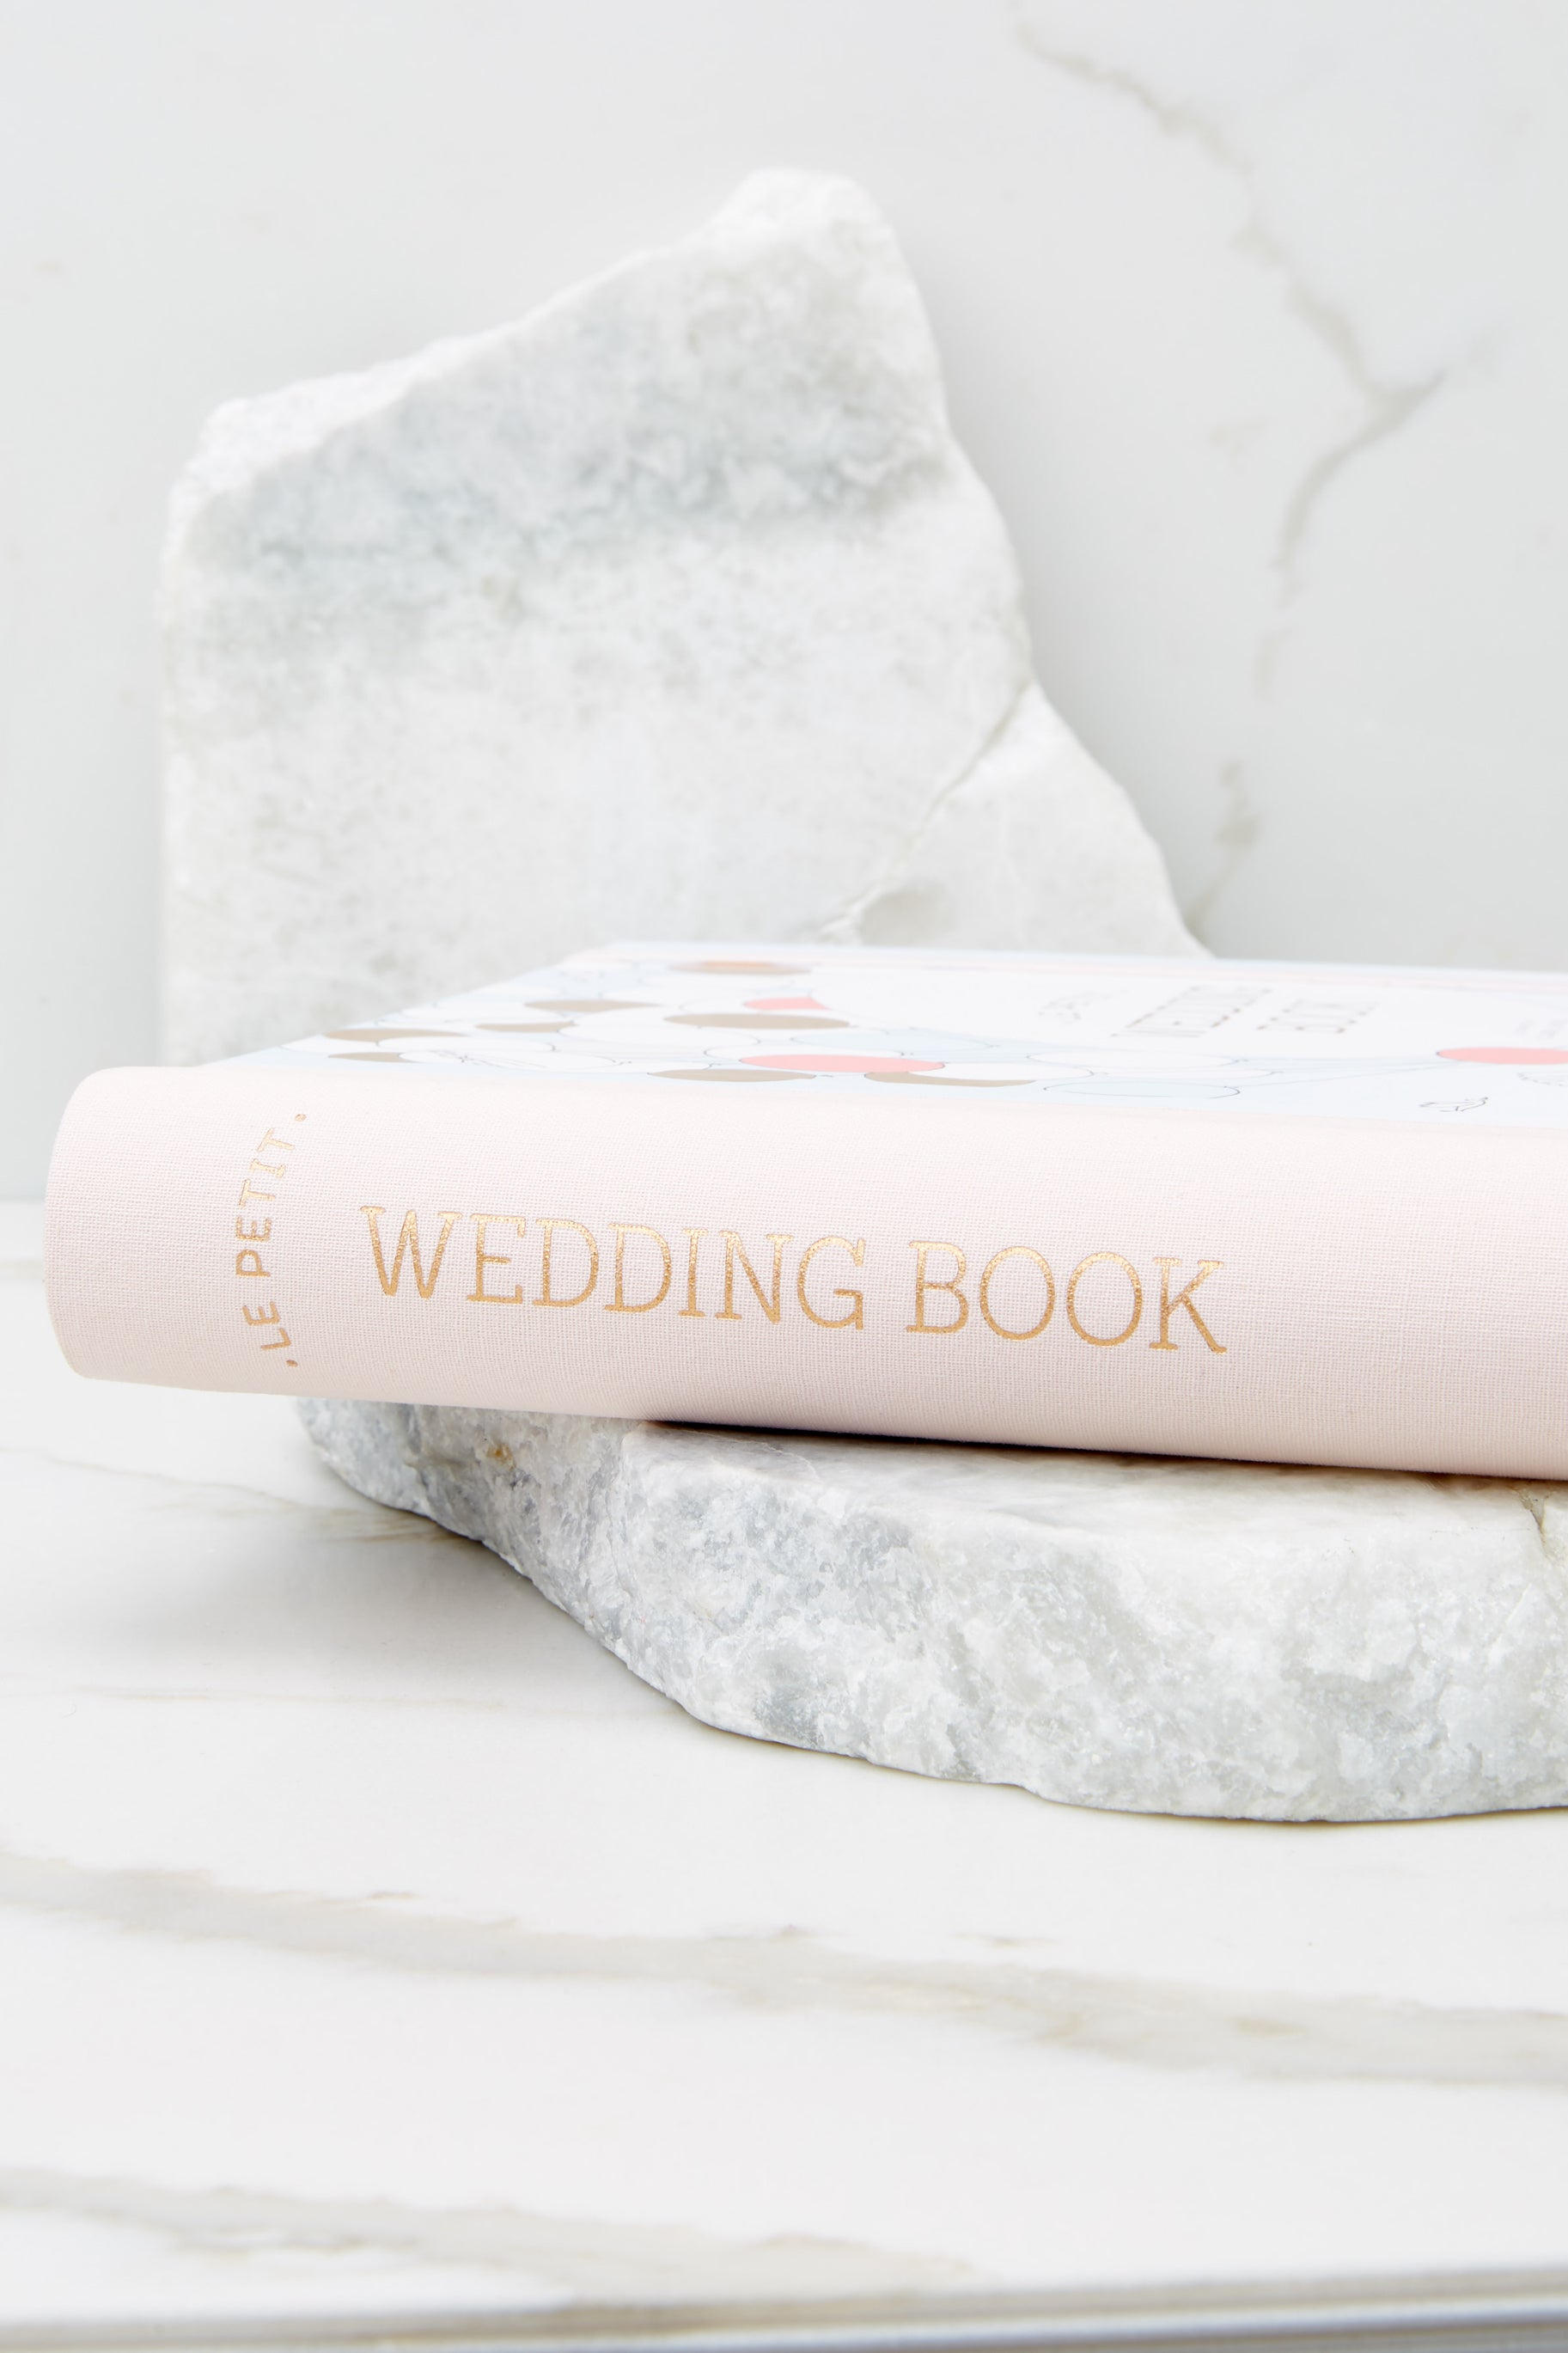 9 Le Petit Wedding Book at reddress.com